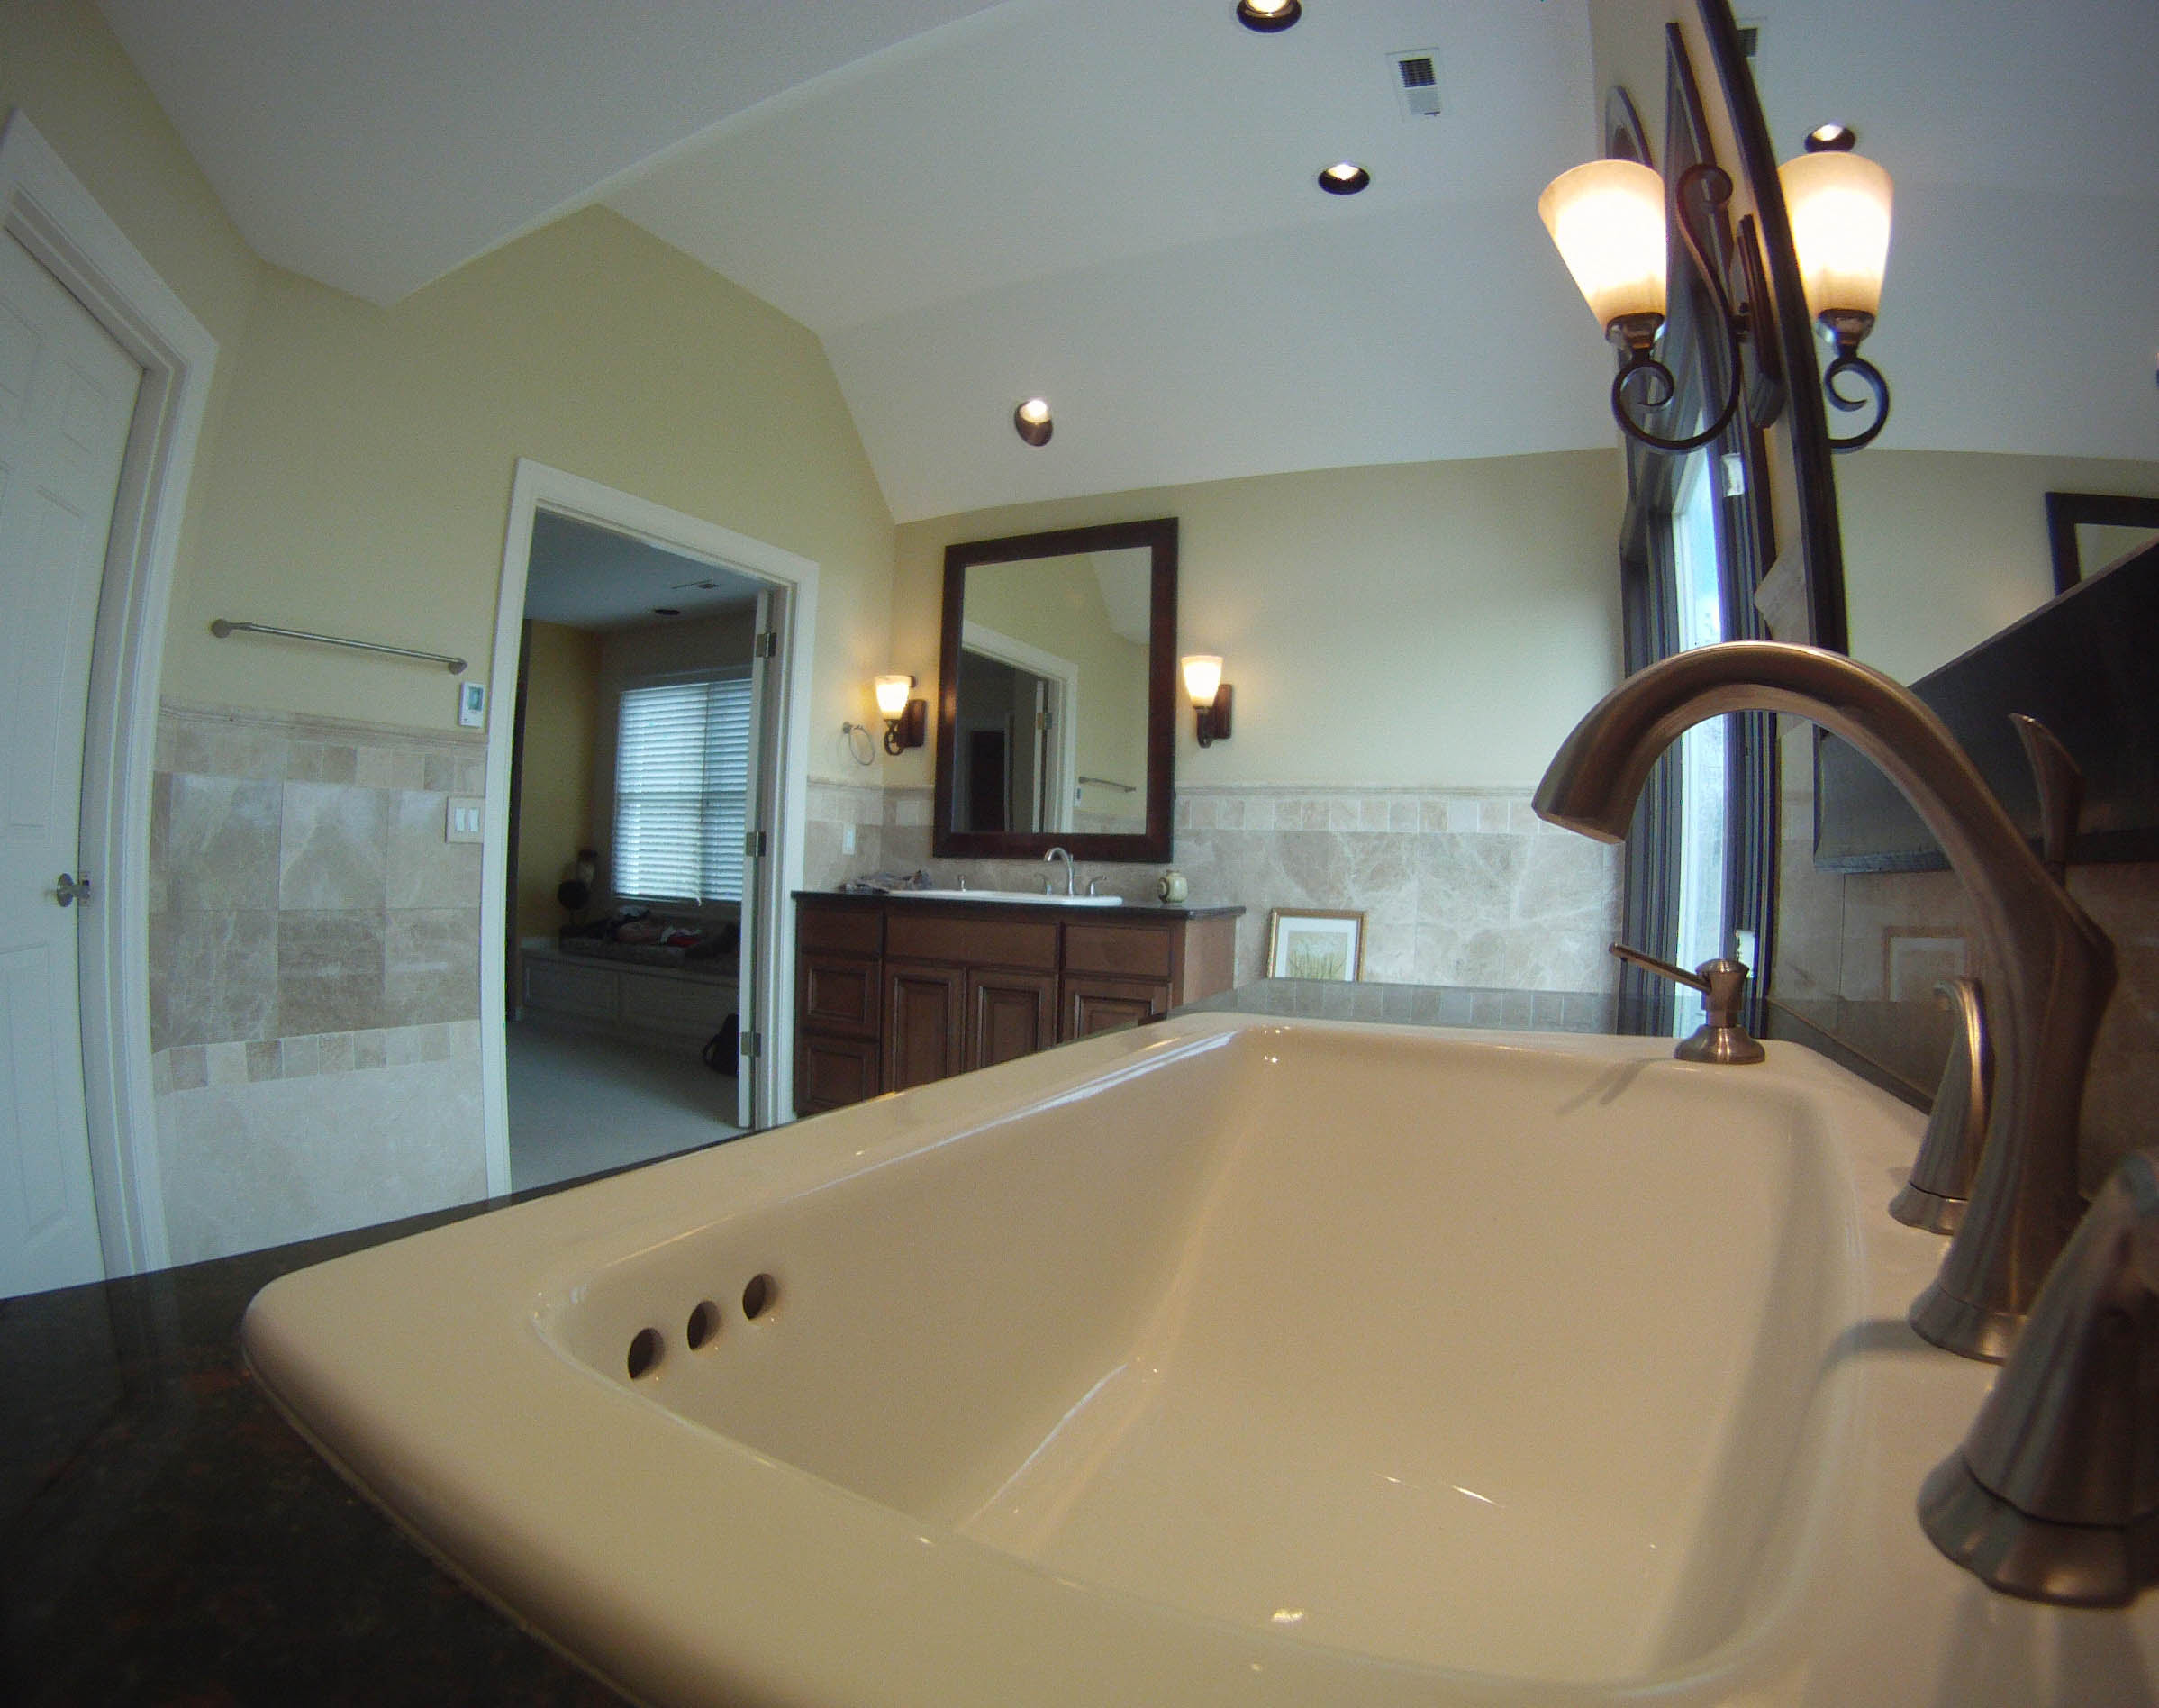 3 low cost bathroom remodel ideas | AFFINITY HOME & DESIGN